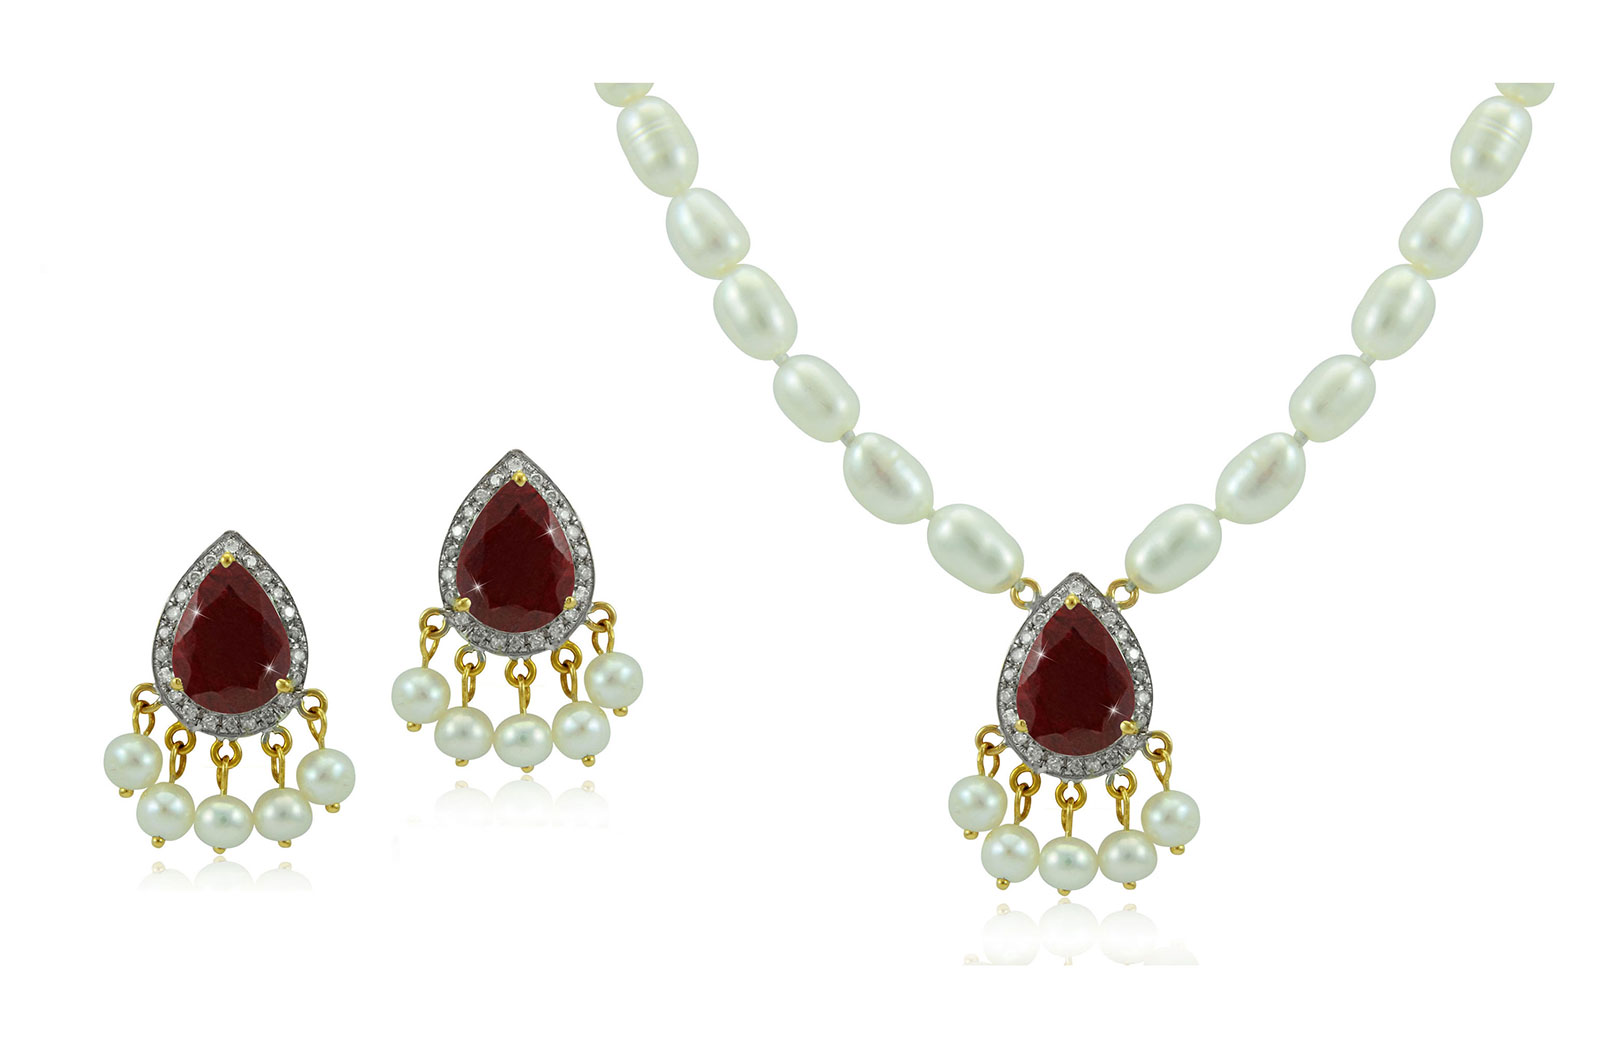 Vera Perla 18K Gold 0.36ct Diamonds, Royal Indian Ruby 2 pcs set